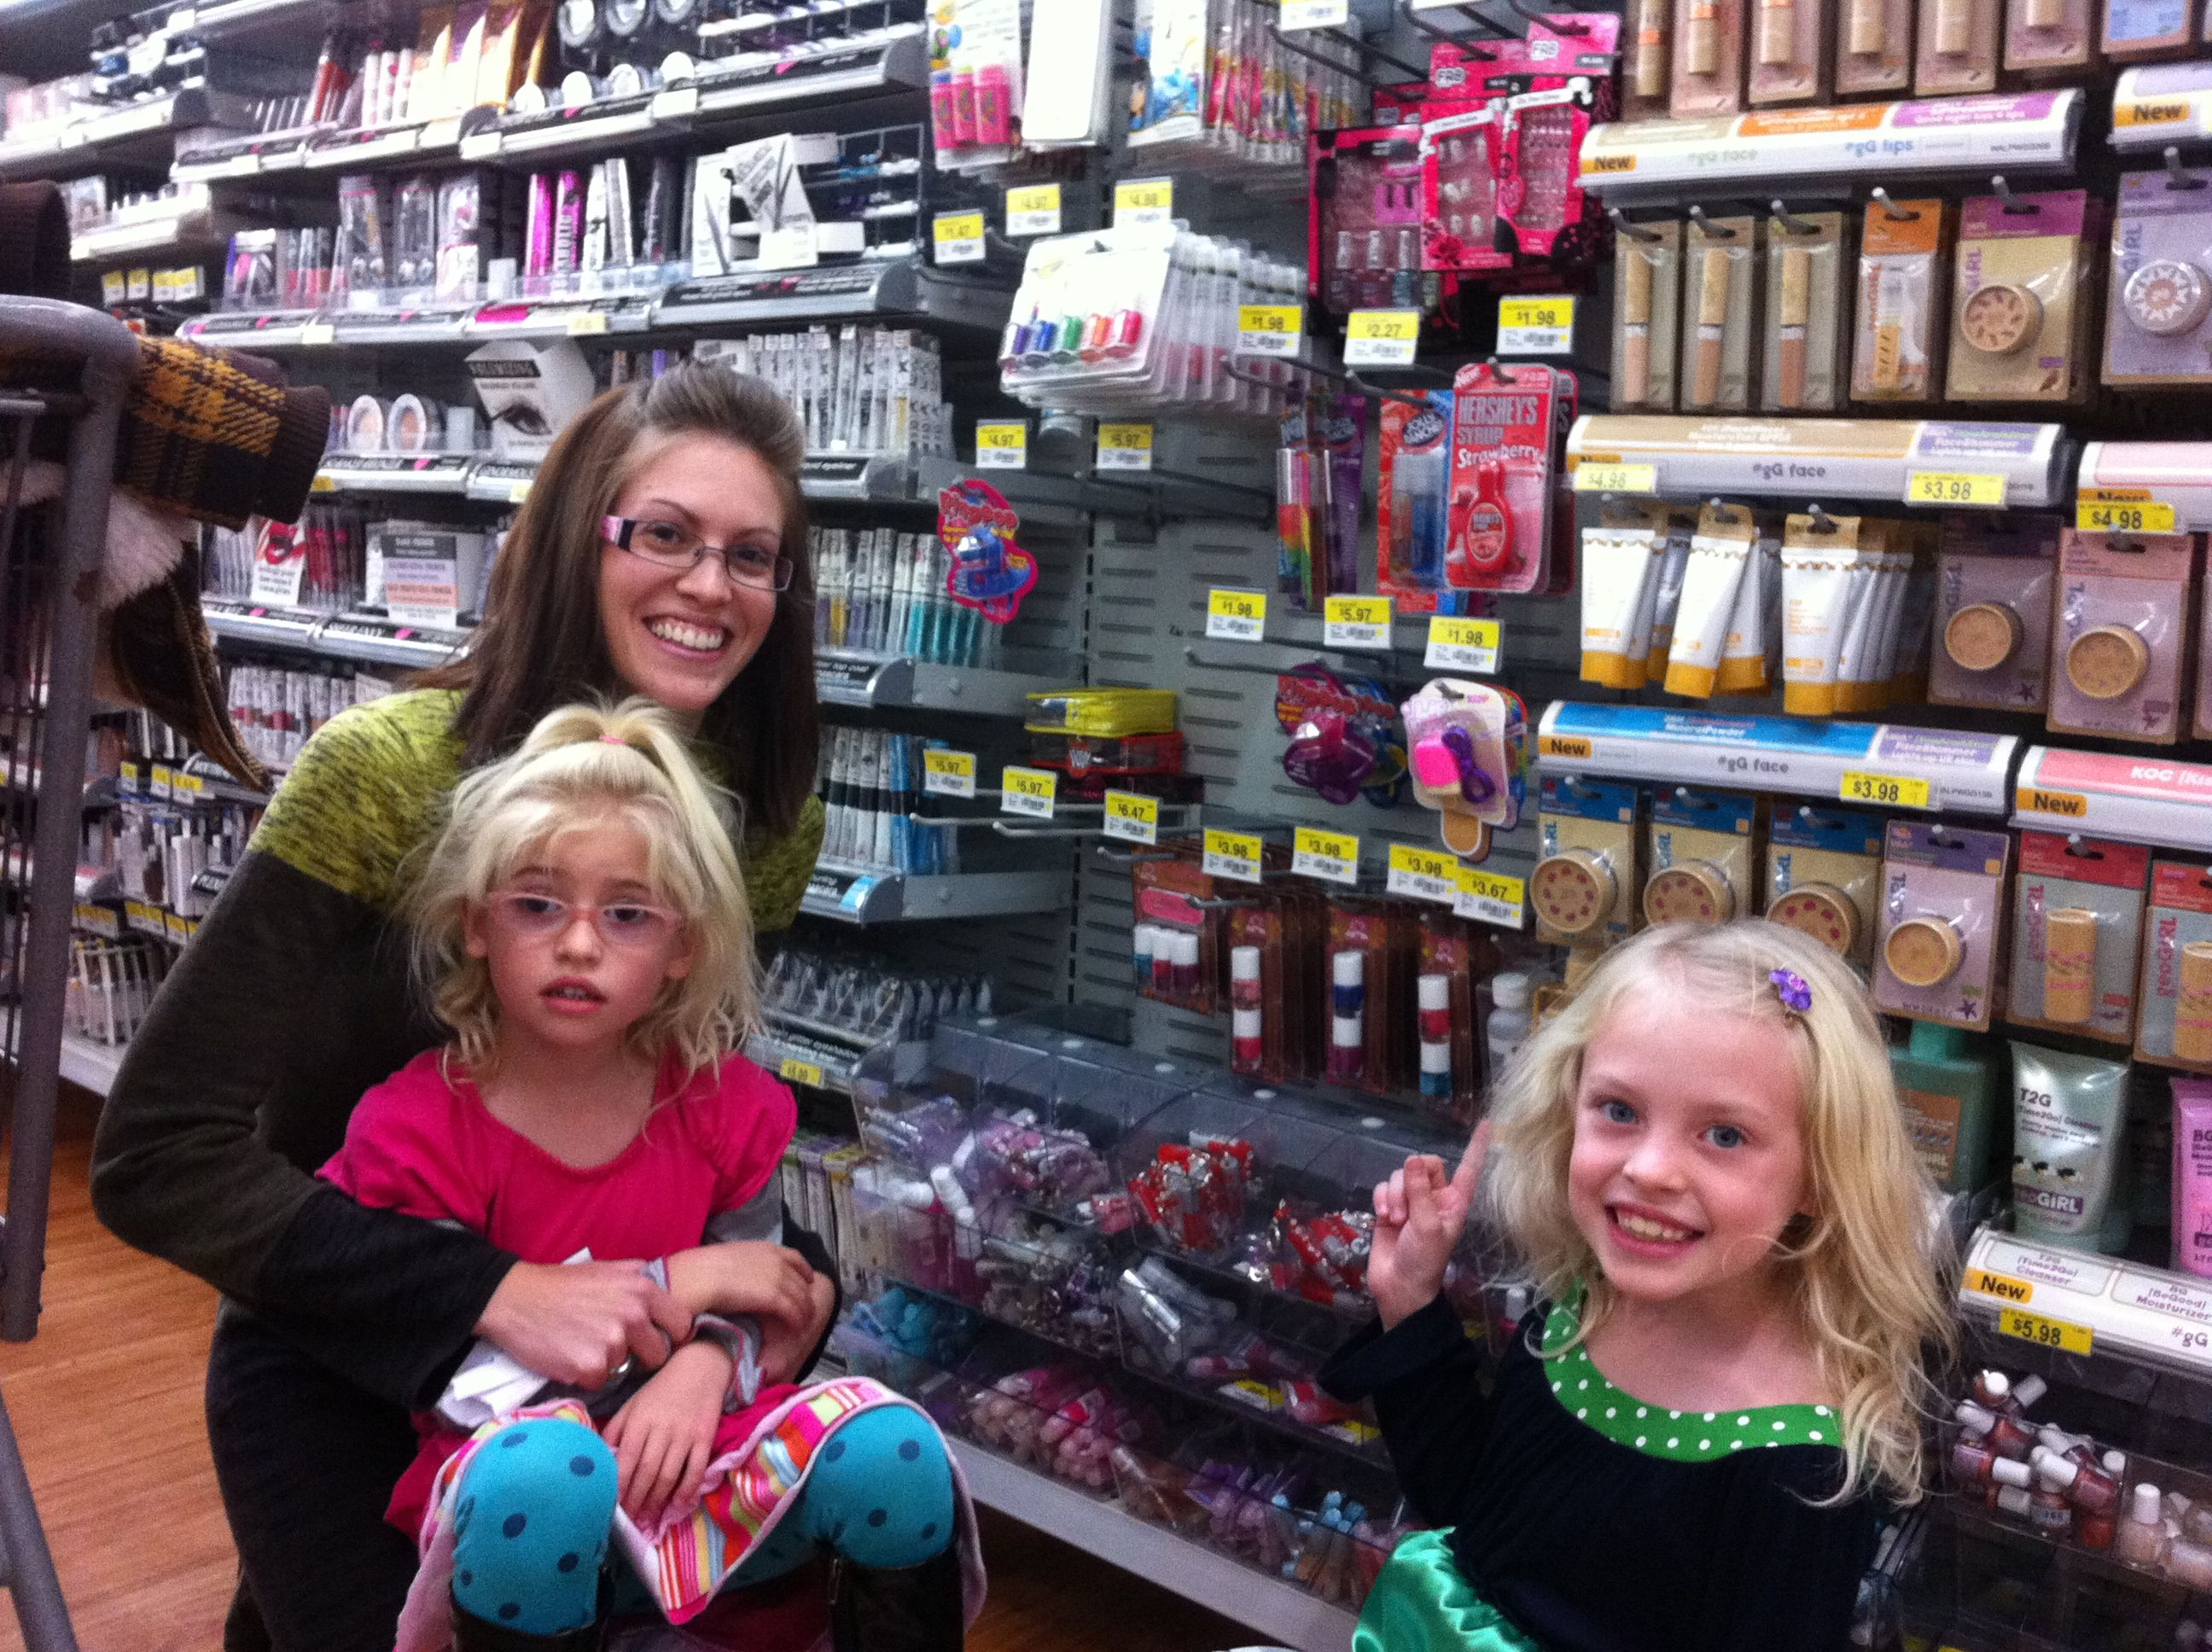 Melanie Piggy Paint Founder With Her Daughters At Wal